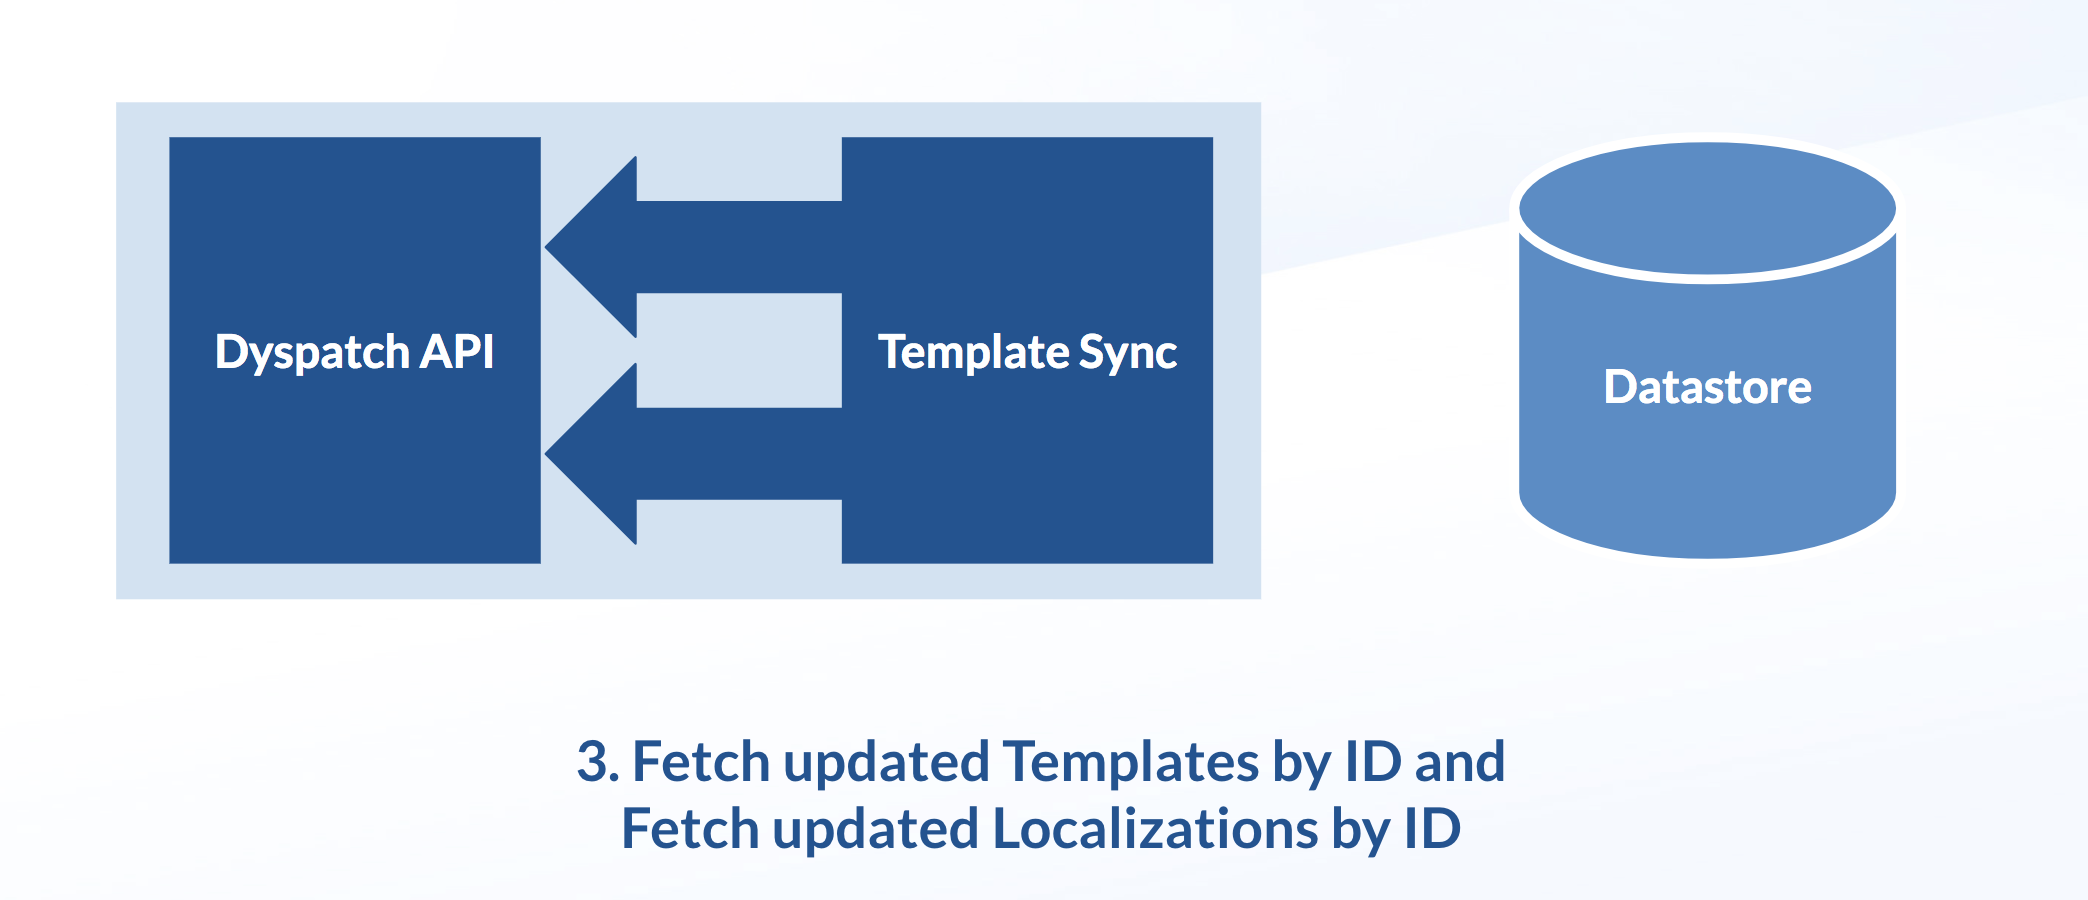 Use get template and get localazation to get compiled templates